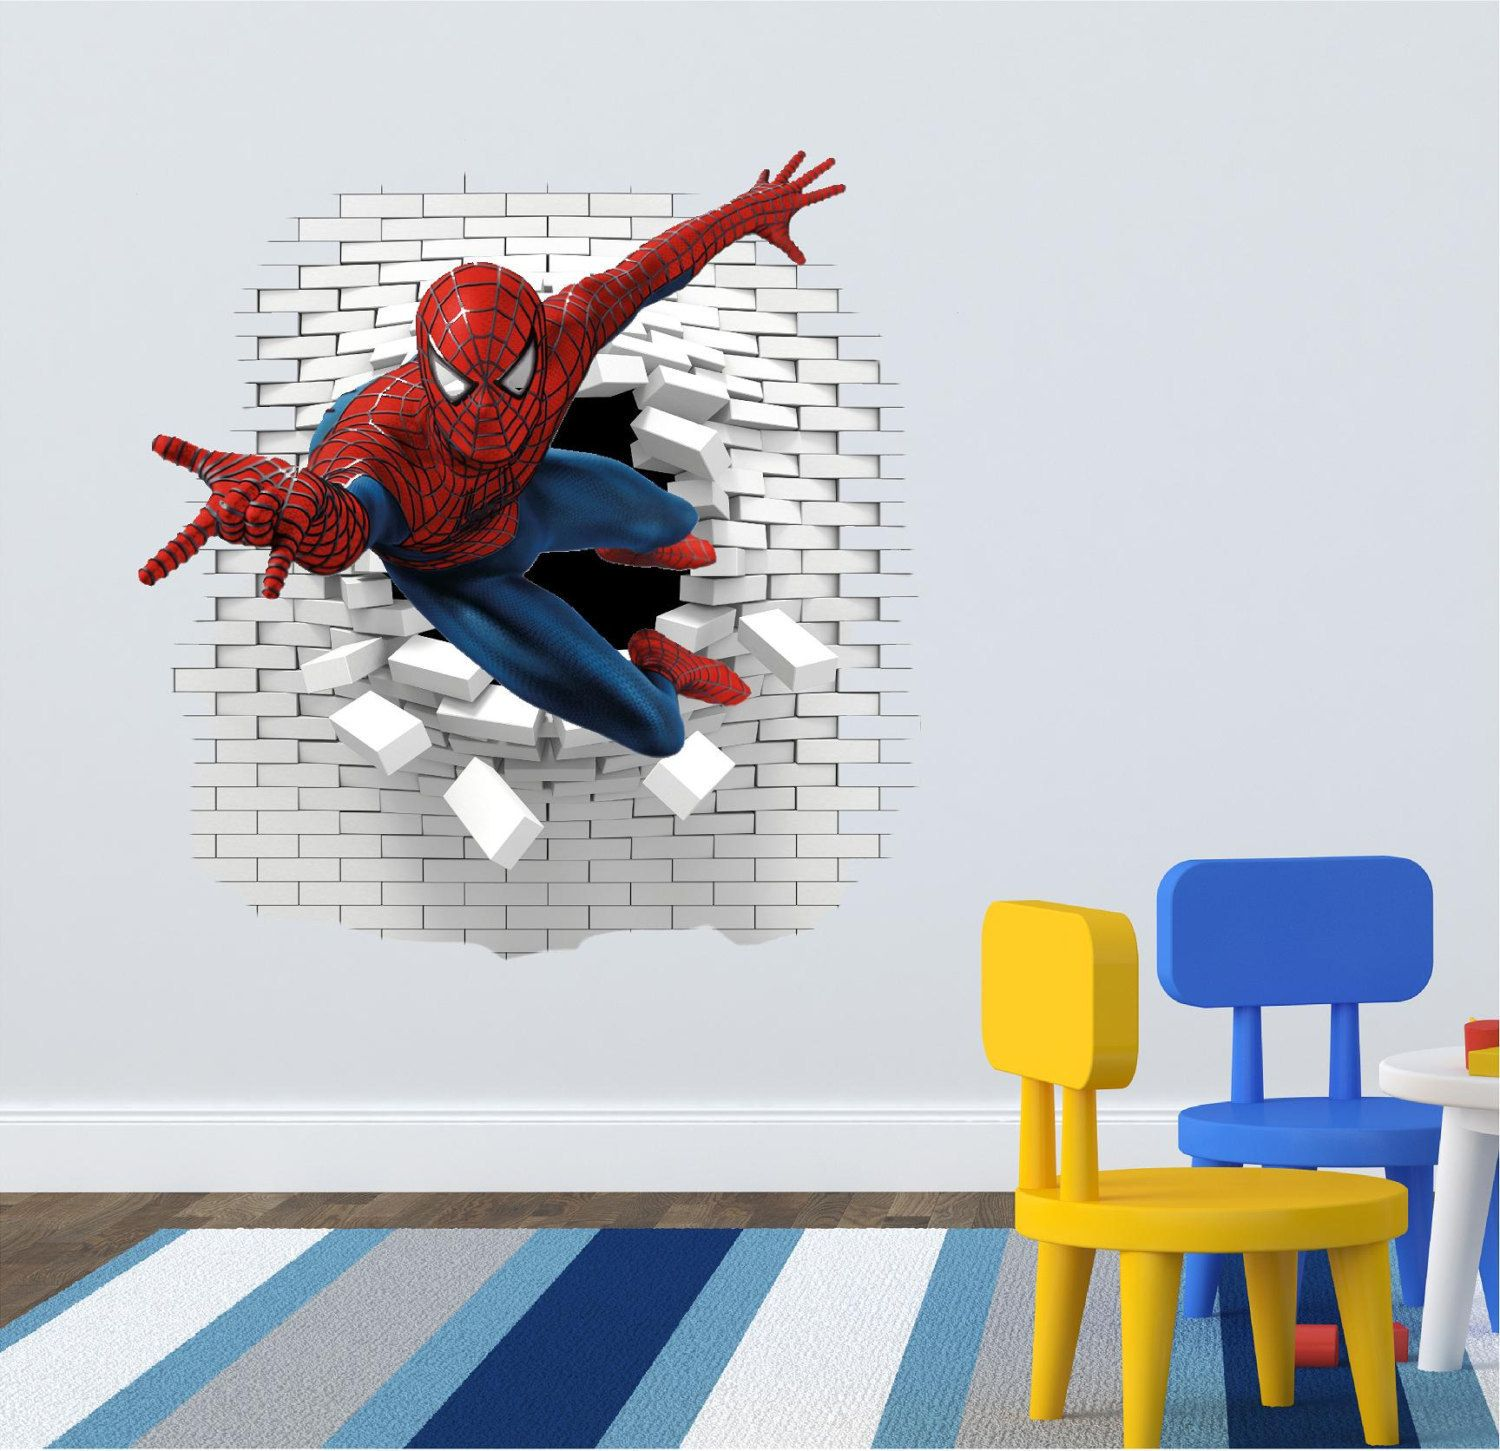 Superb 3D Spiderman Wall Decal Great For The Kids Room. By ArtogText On Etsy